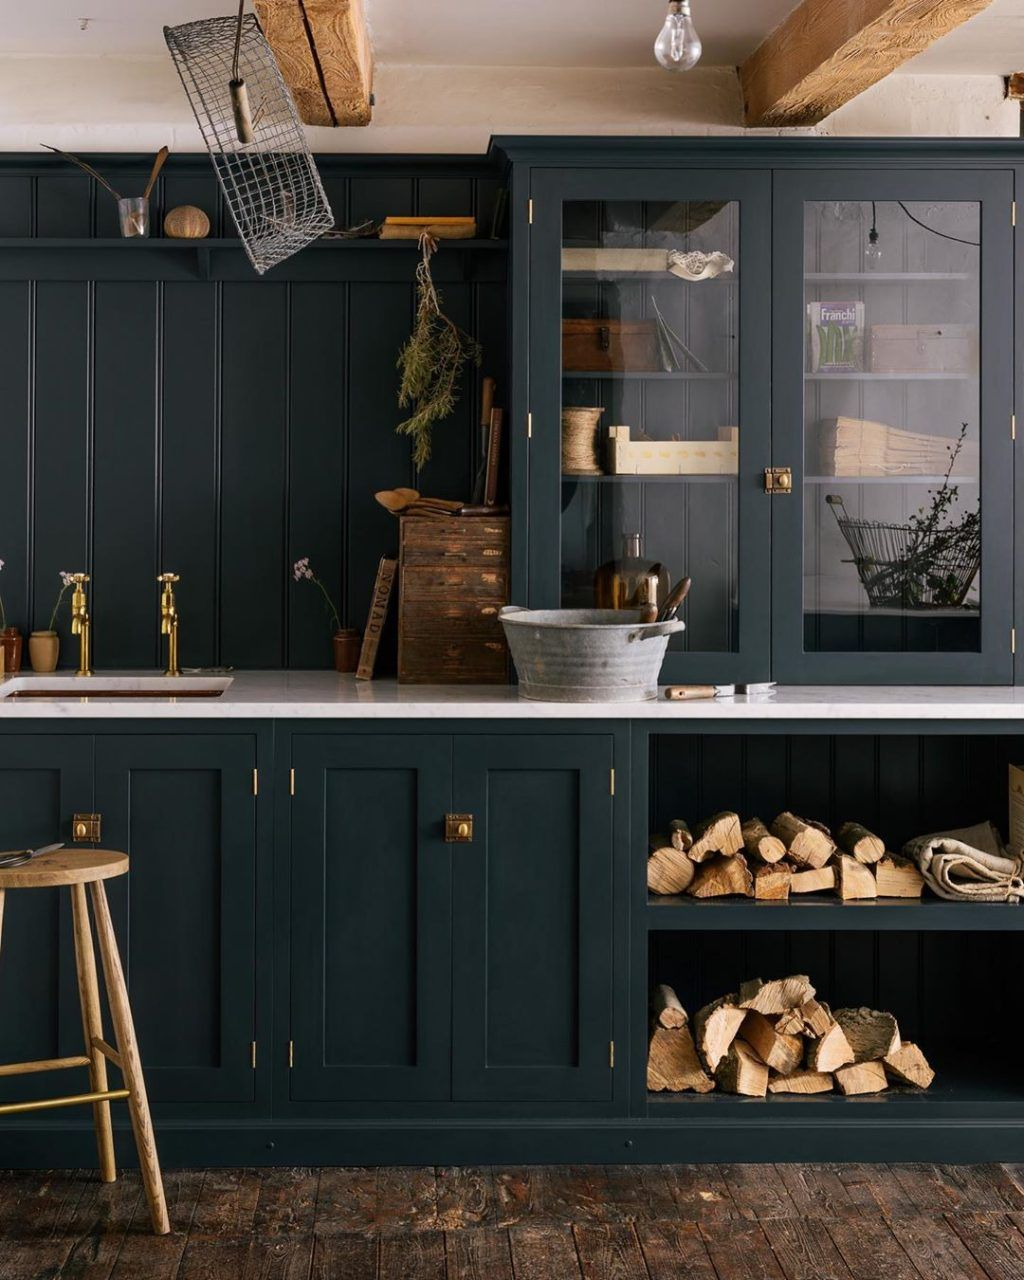 Colors We're Considering for Our Phase 1 Kitchen Cabinets Makeover! #darkkitchencabinets